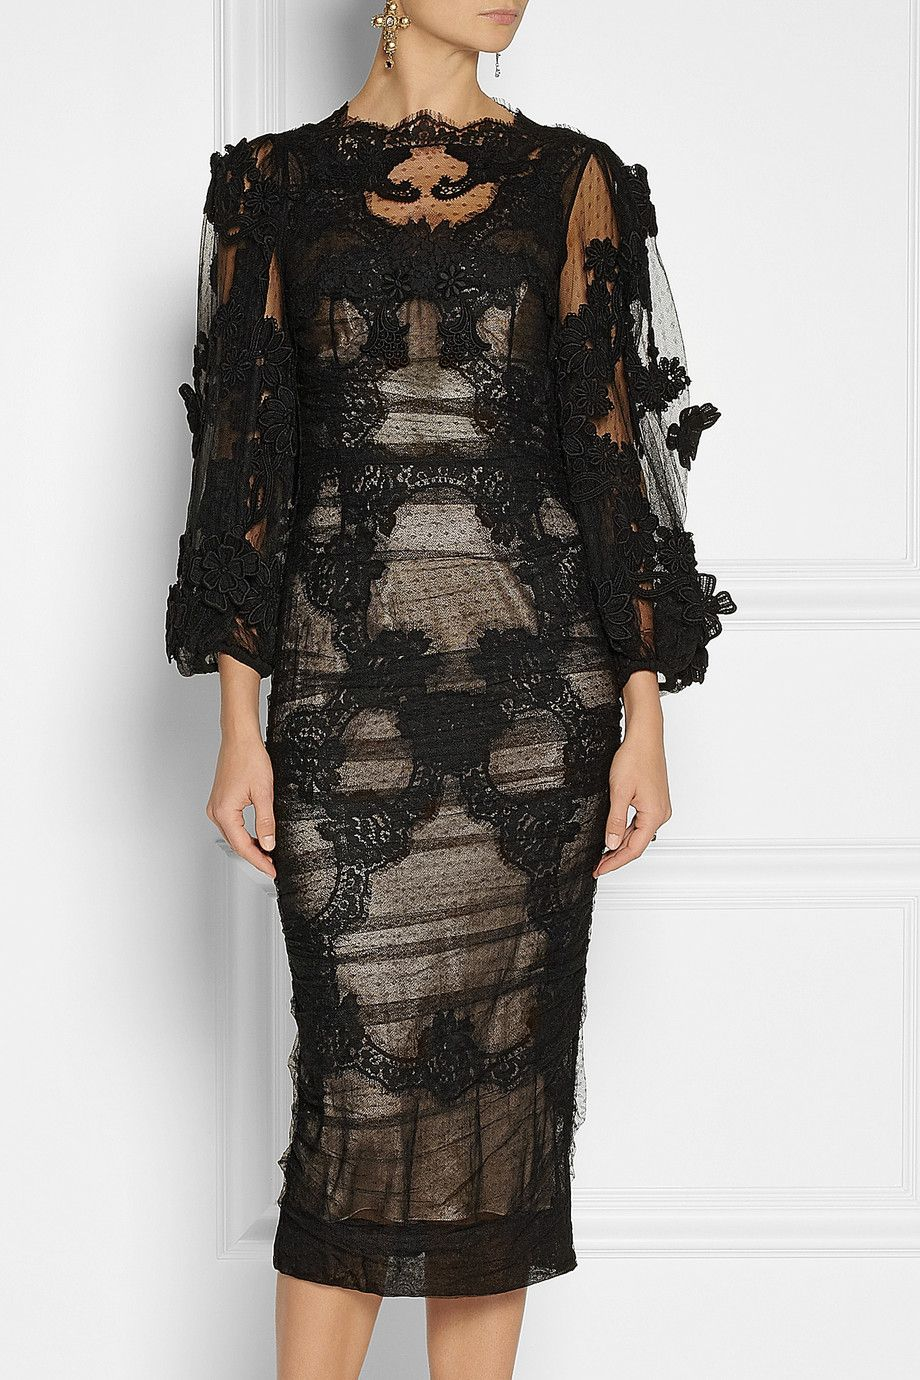 lace and ruched sheer dress - Black Dolce & Gabbana